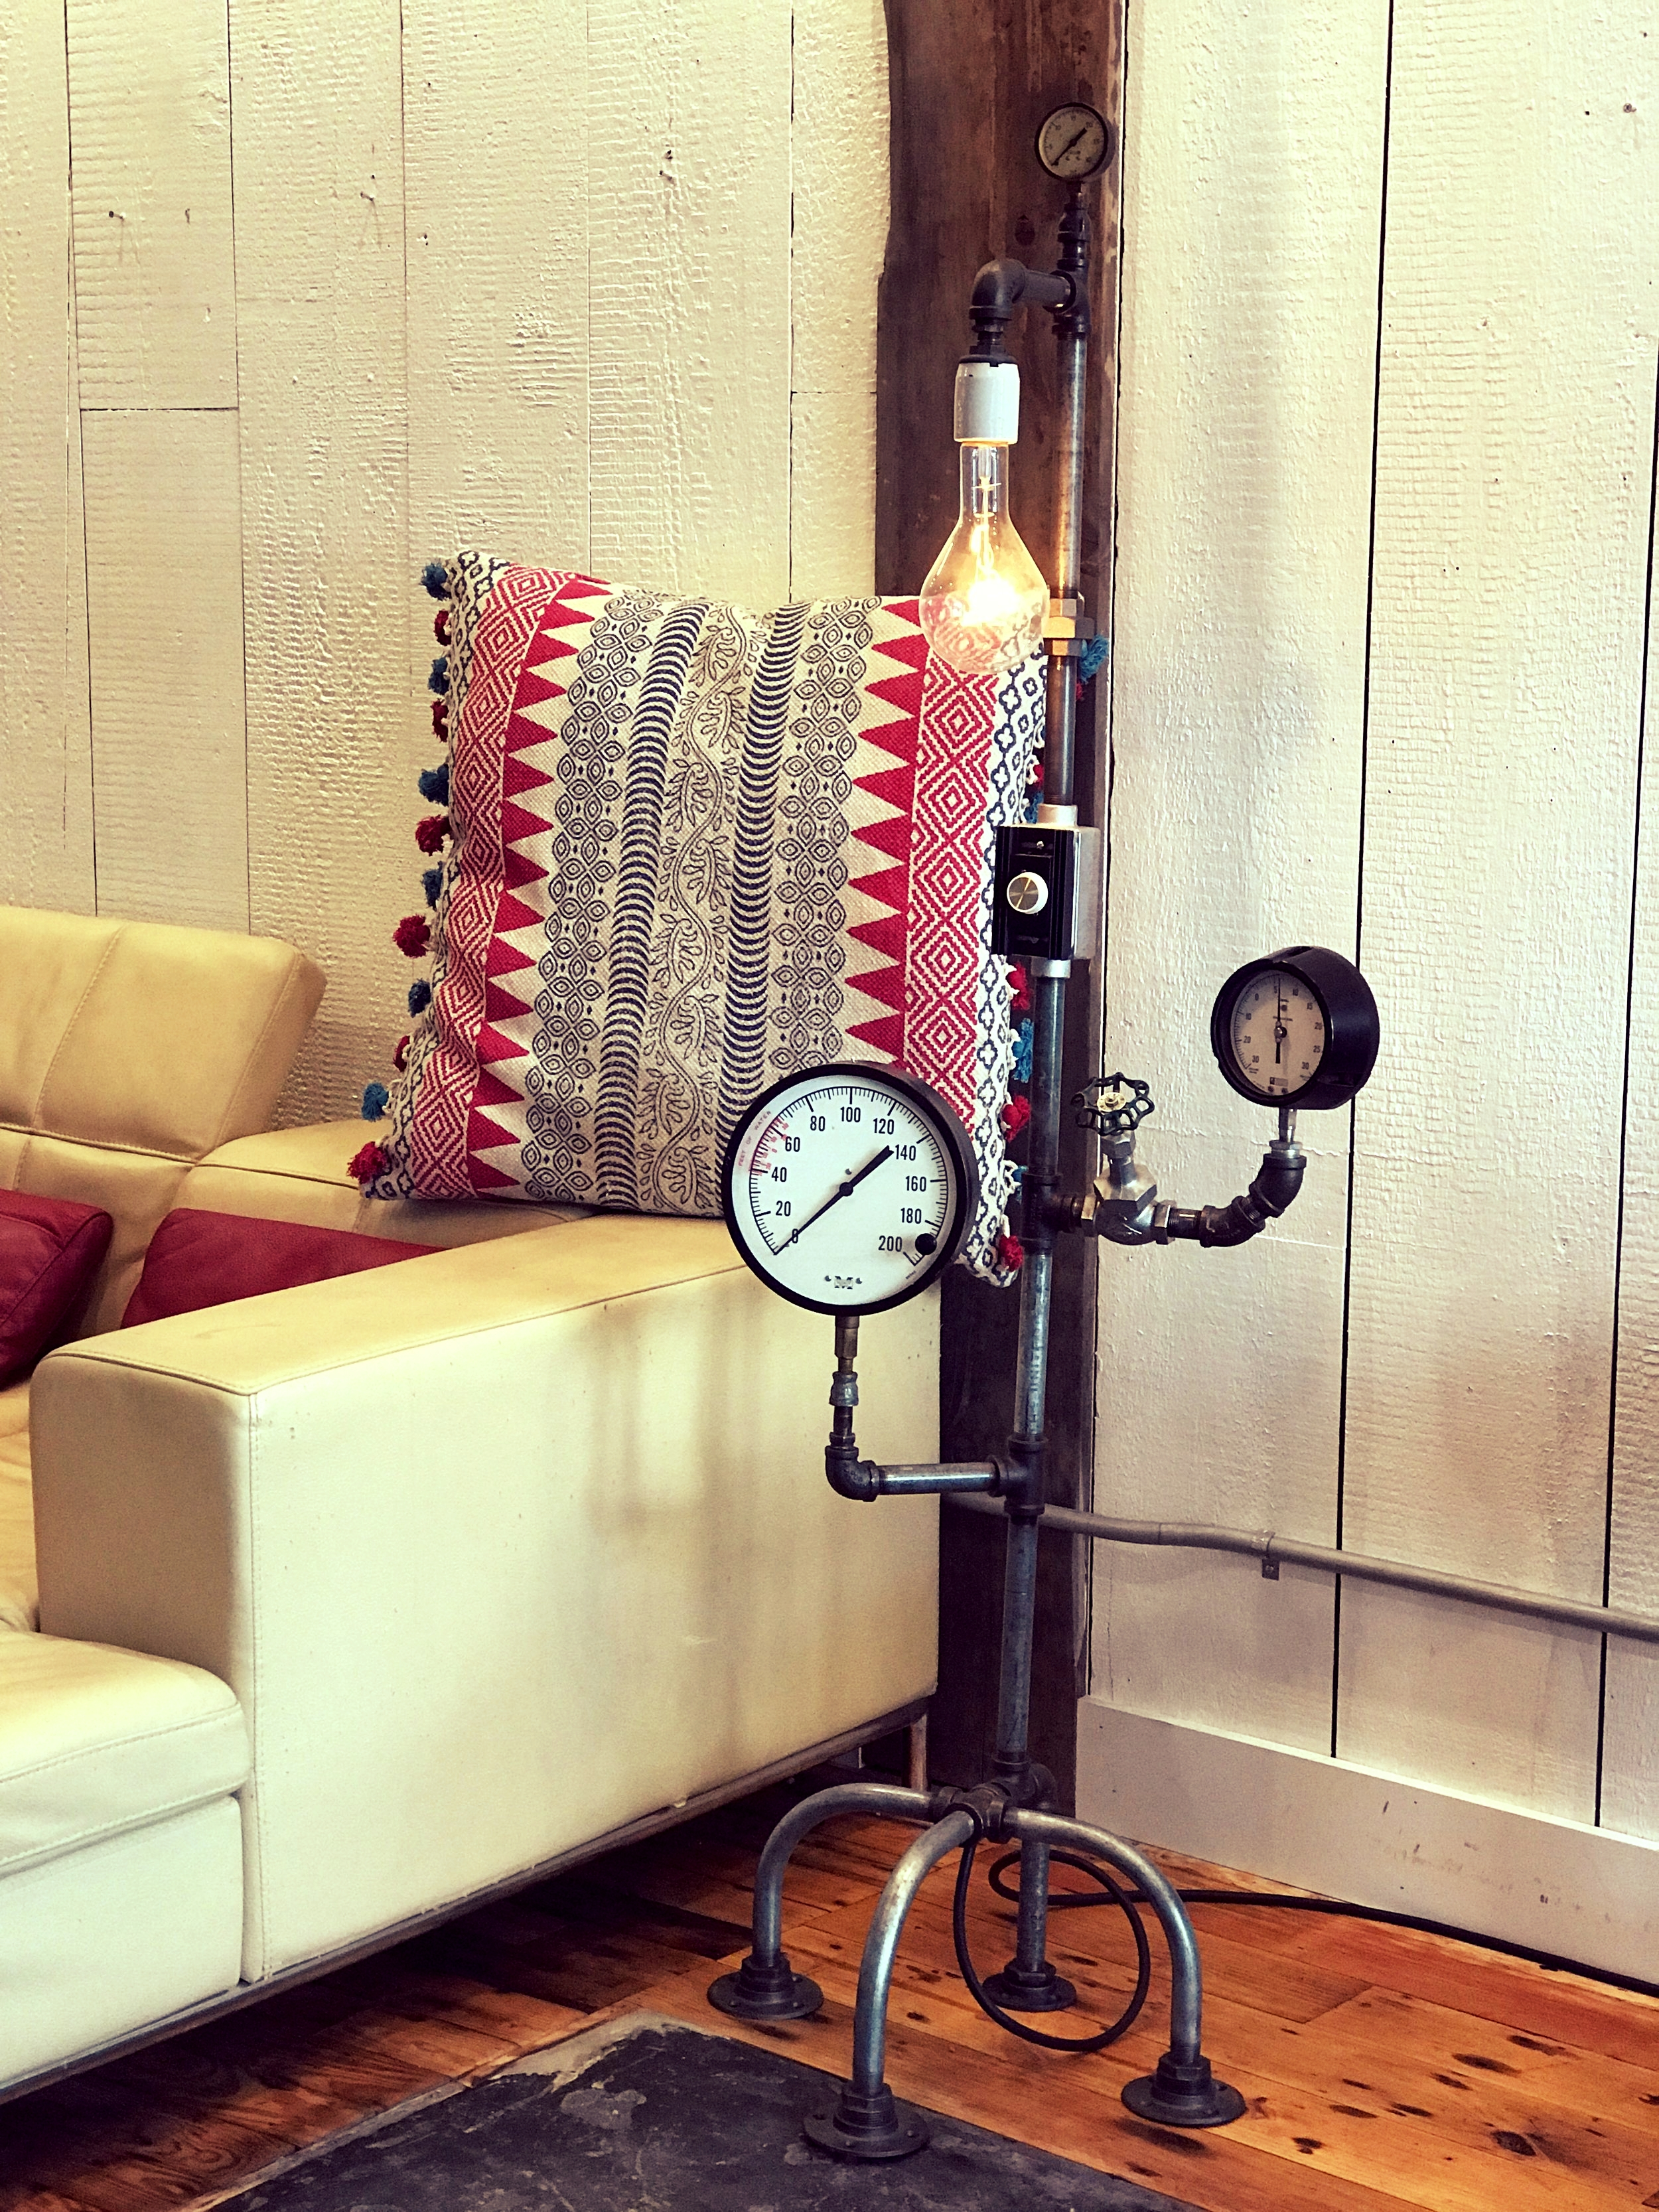 Mike piscatelli floor lamp.jpg